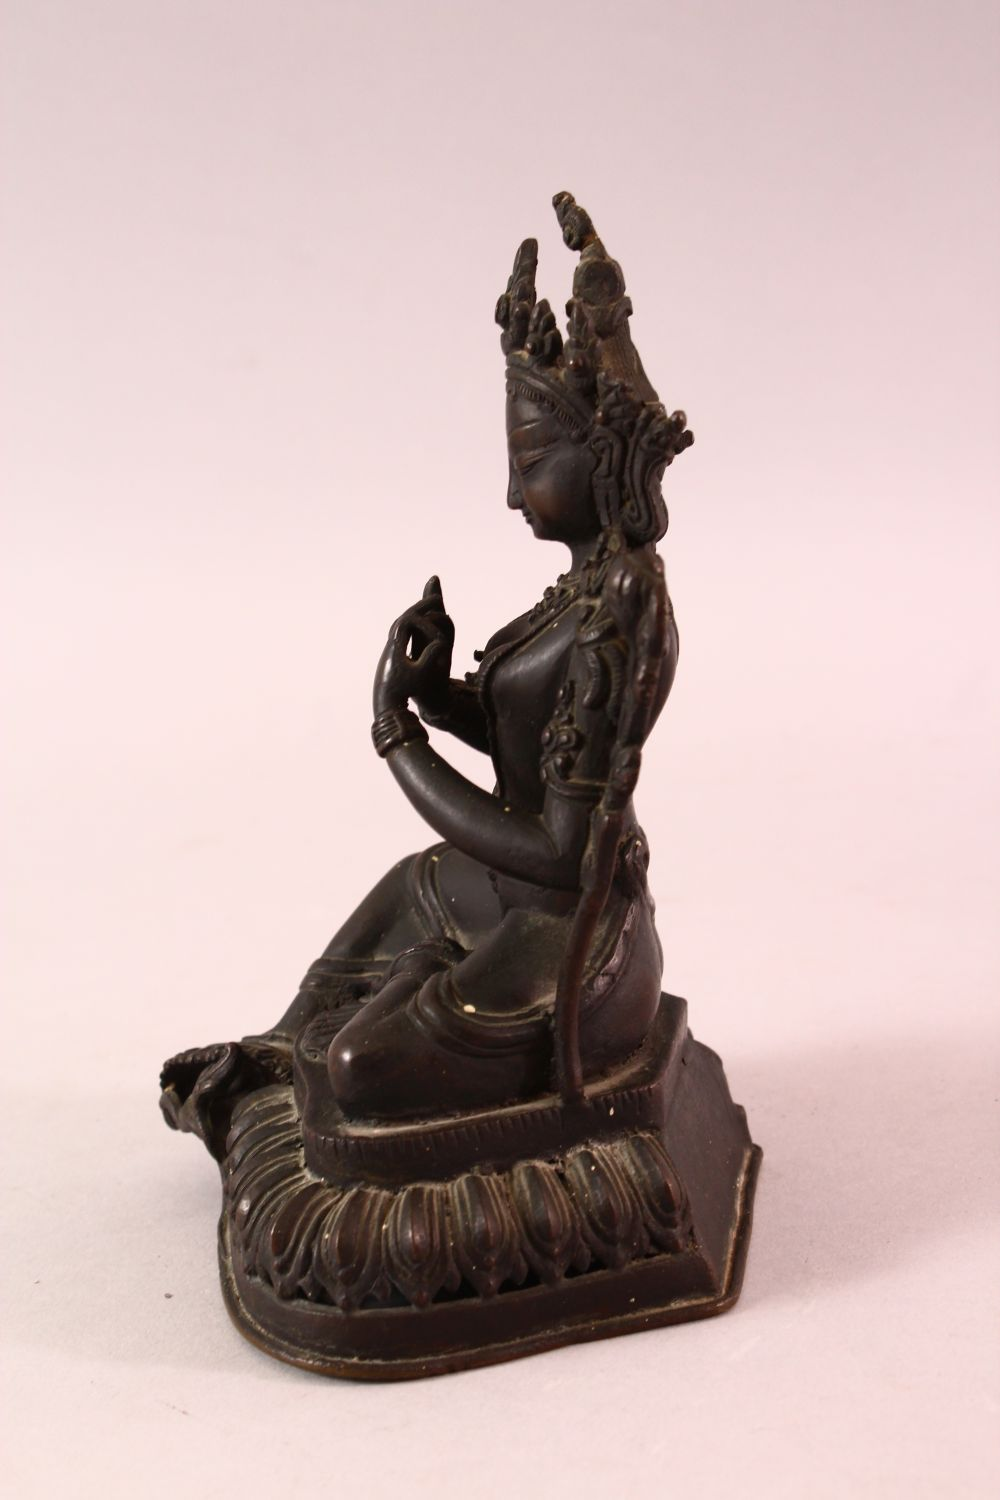 A 19TH CENTURY INDIAN BRONZE FIGURE OF SHIVA / DEITY, in a seated pose with hands together, upon - Image 4 of 5